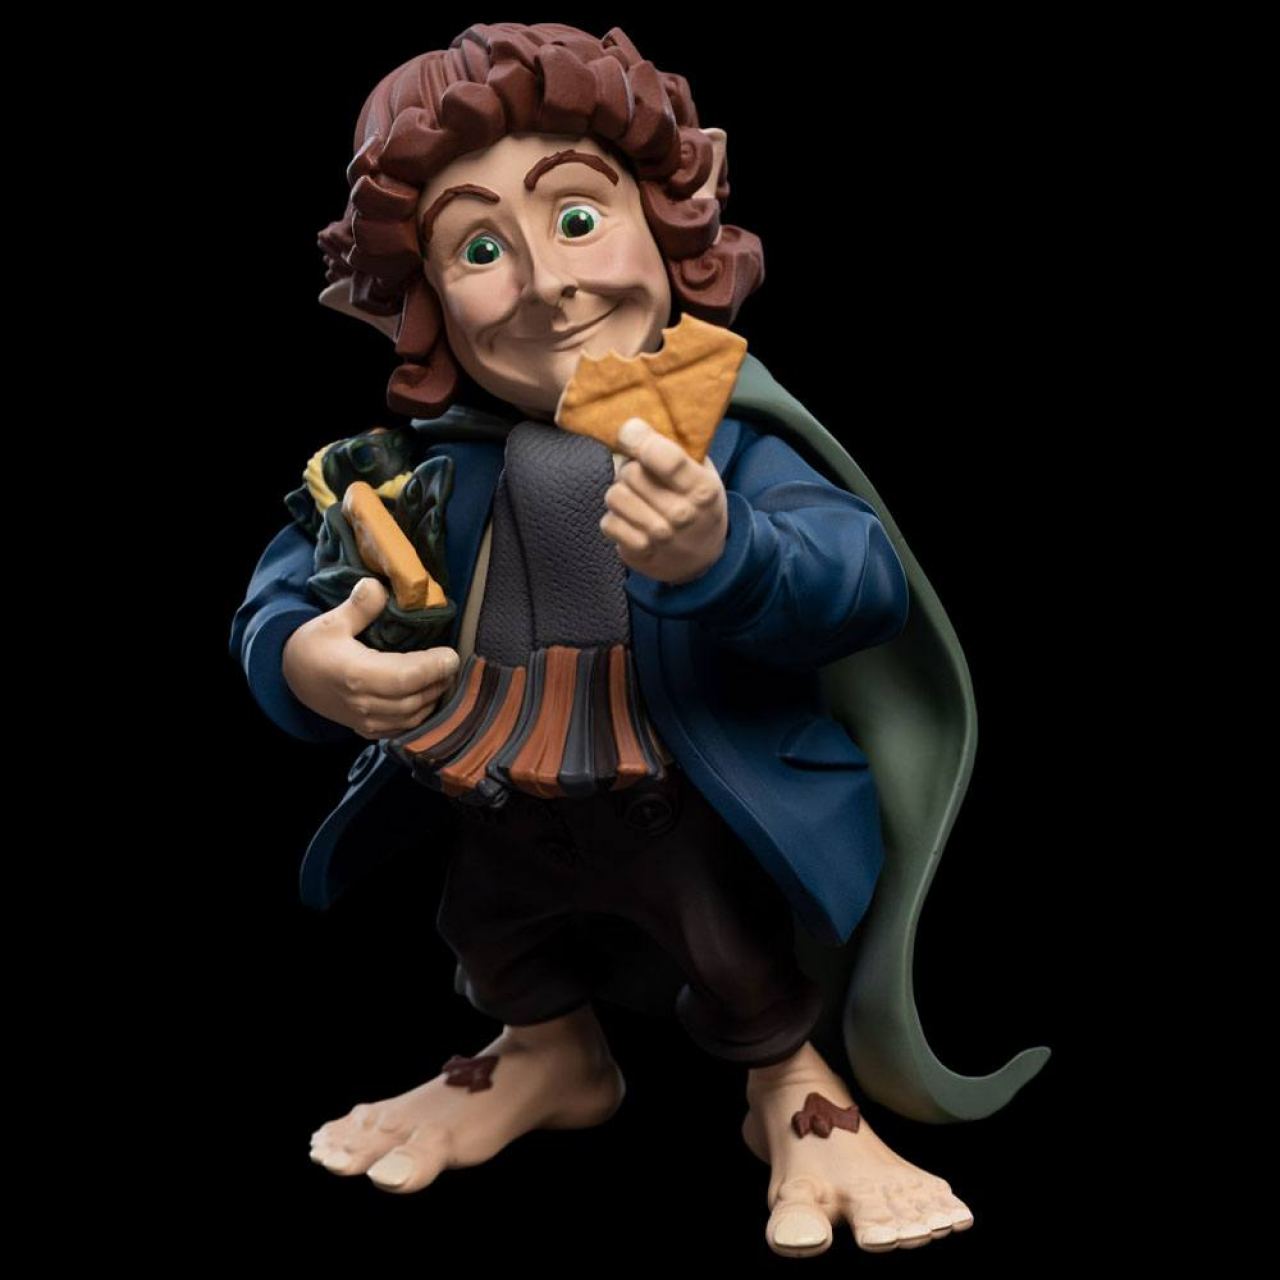 Lord of the Rings Mini Epics Vinyl Figure Pippin 18 cm